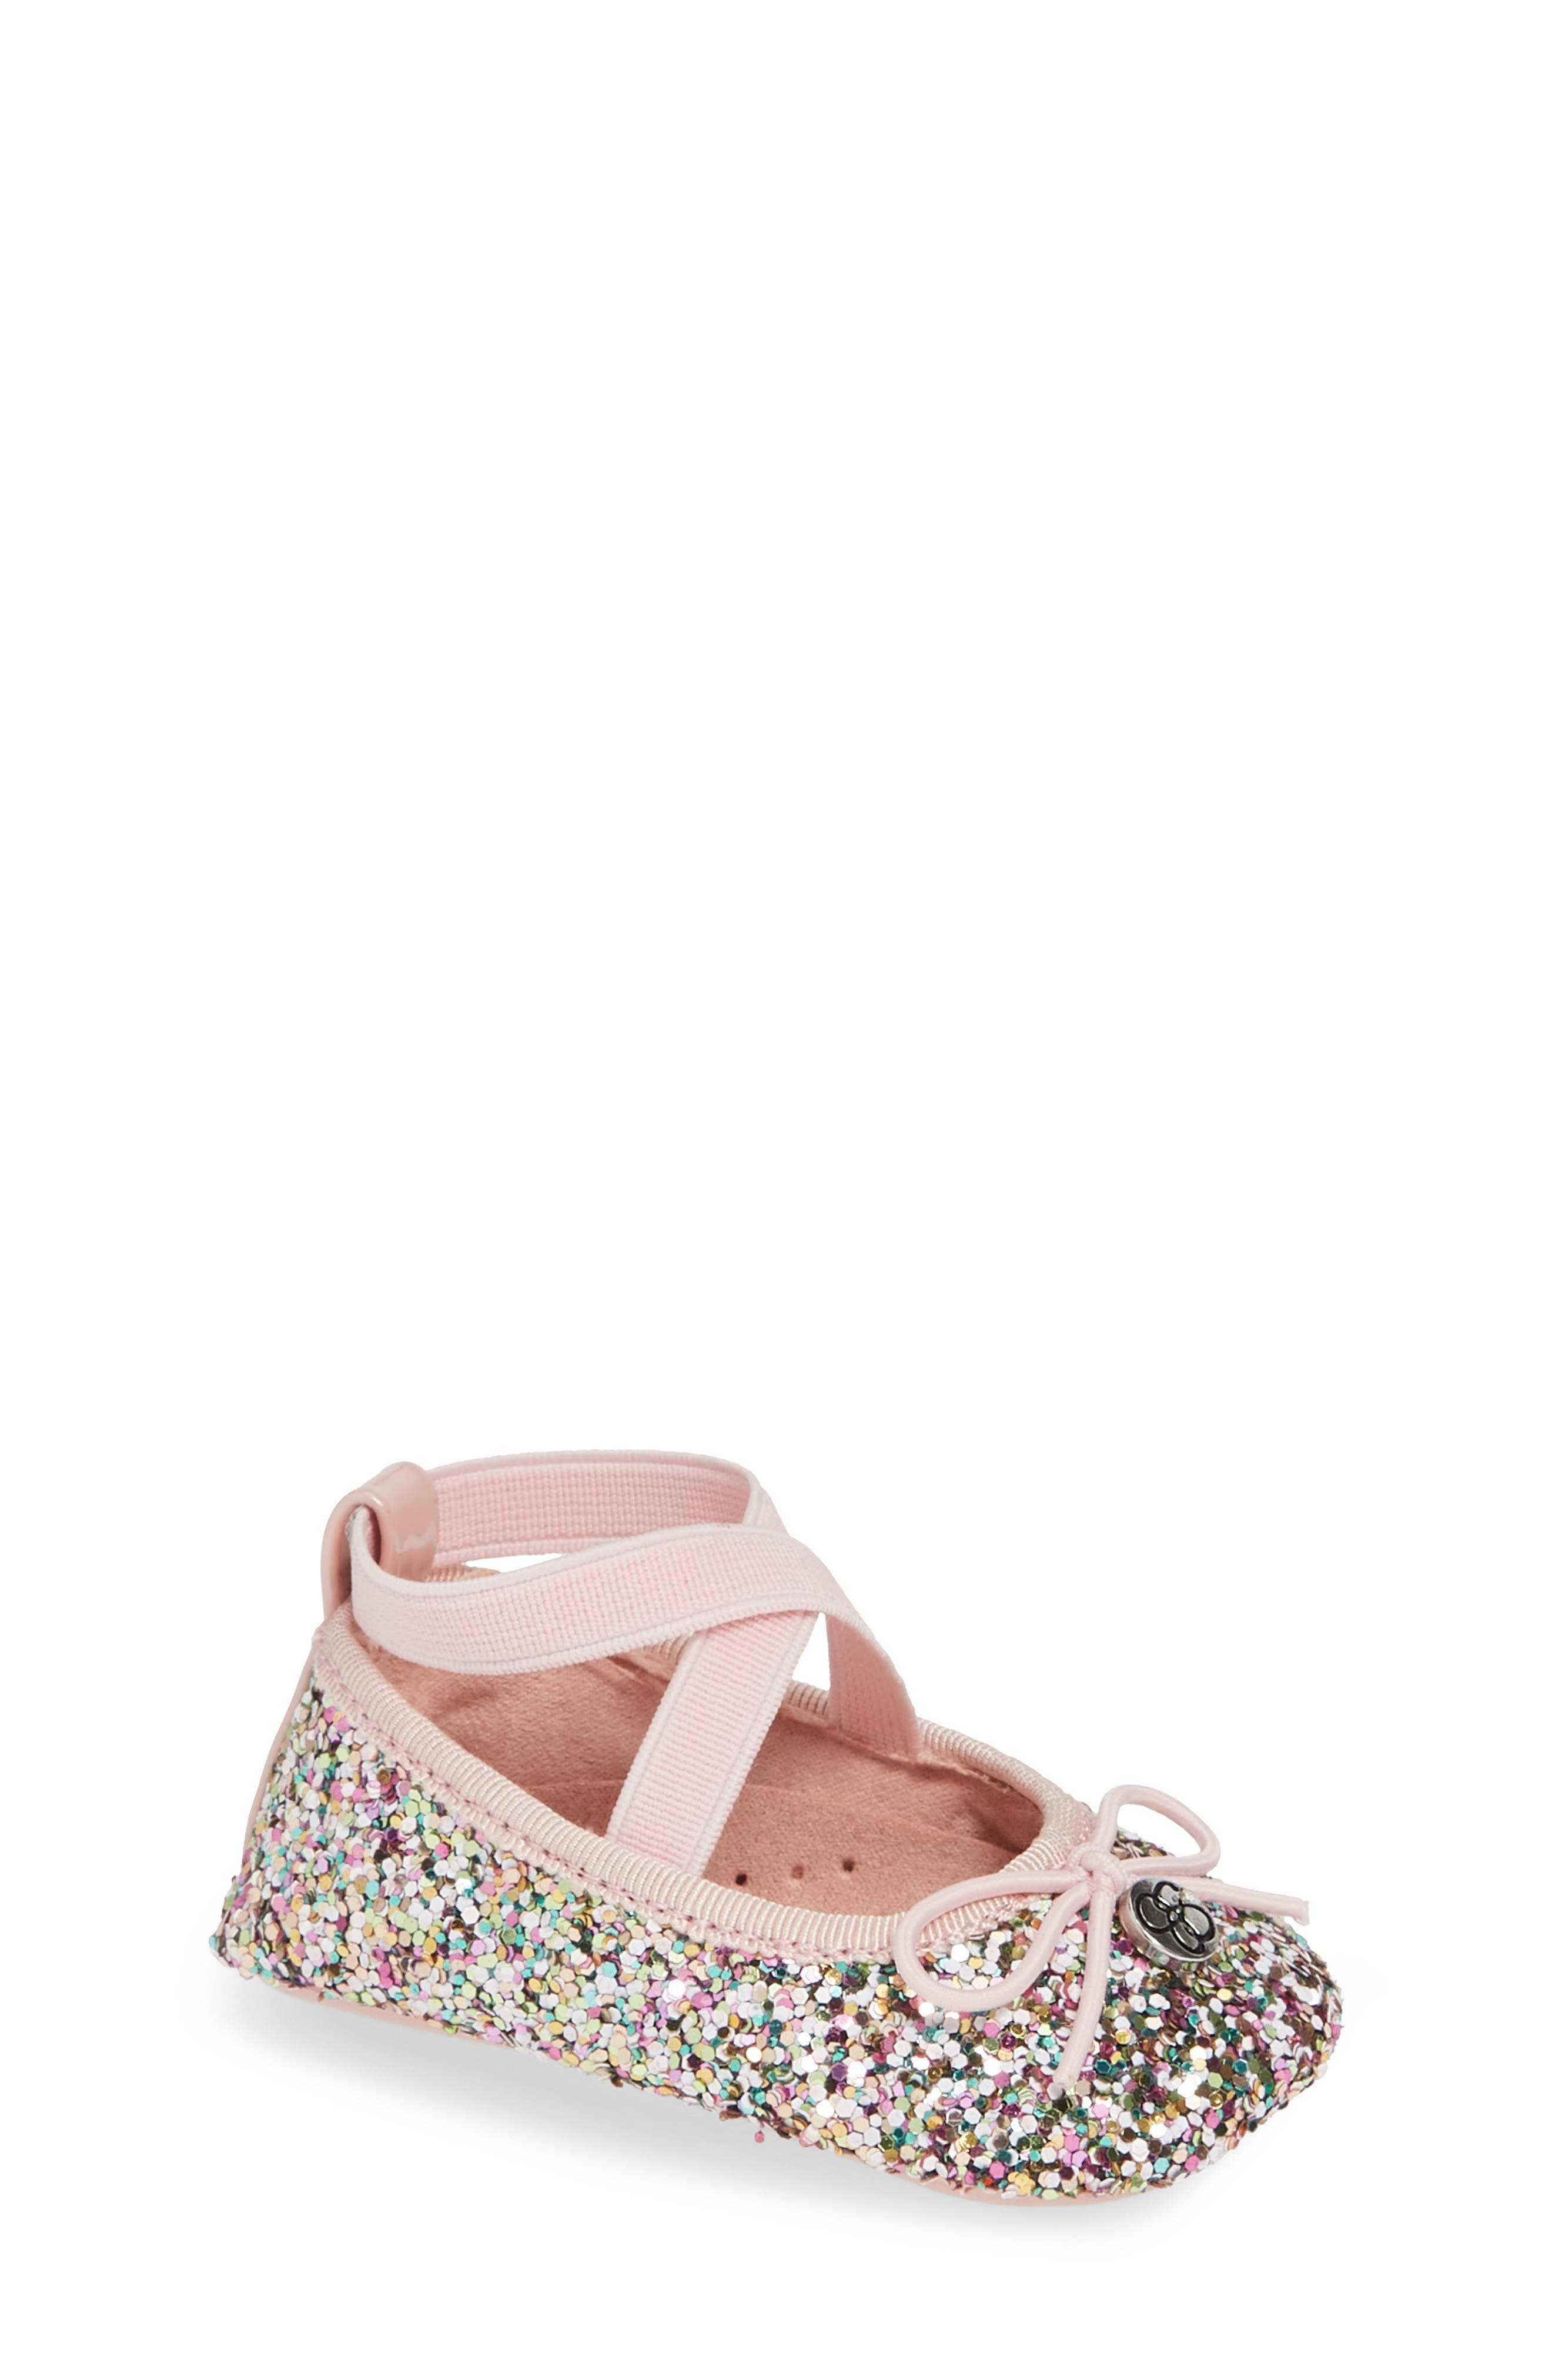 9ede168a7e77b4 Girls Flats - Shoes - Kids  Shoes and Boots to Buy Online